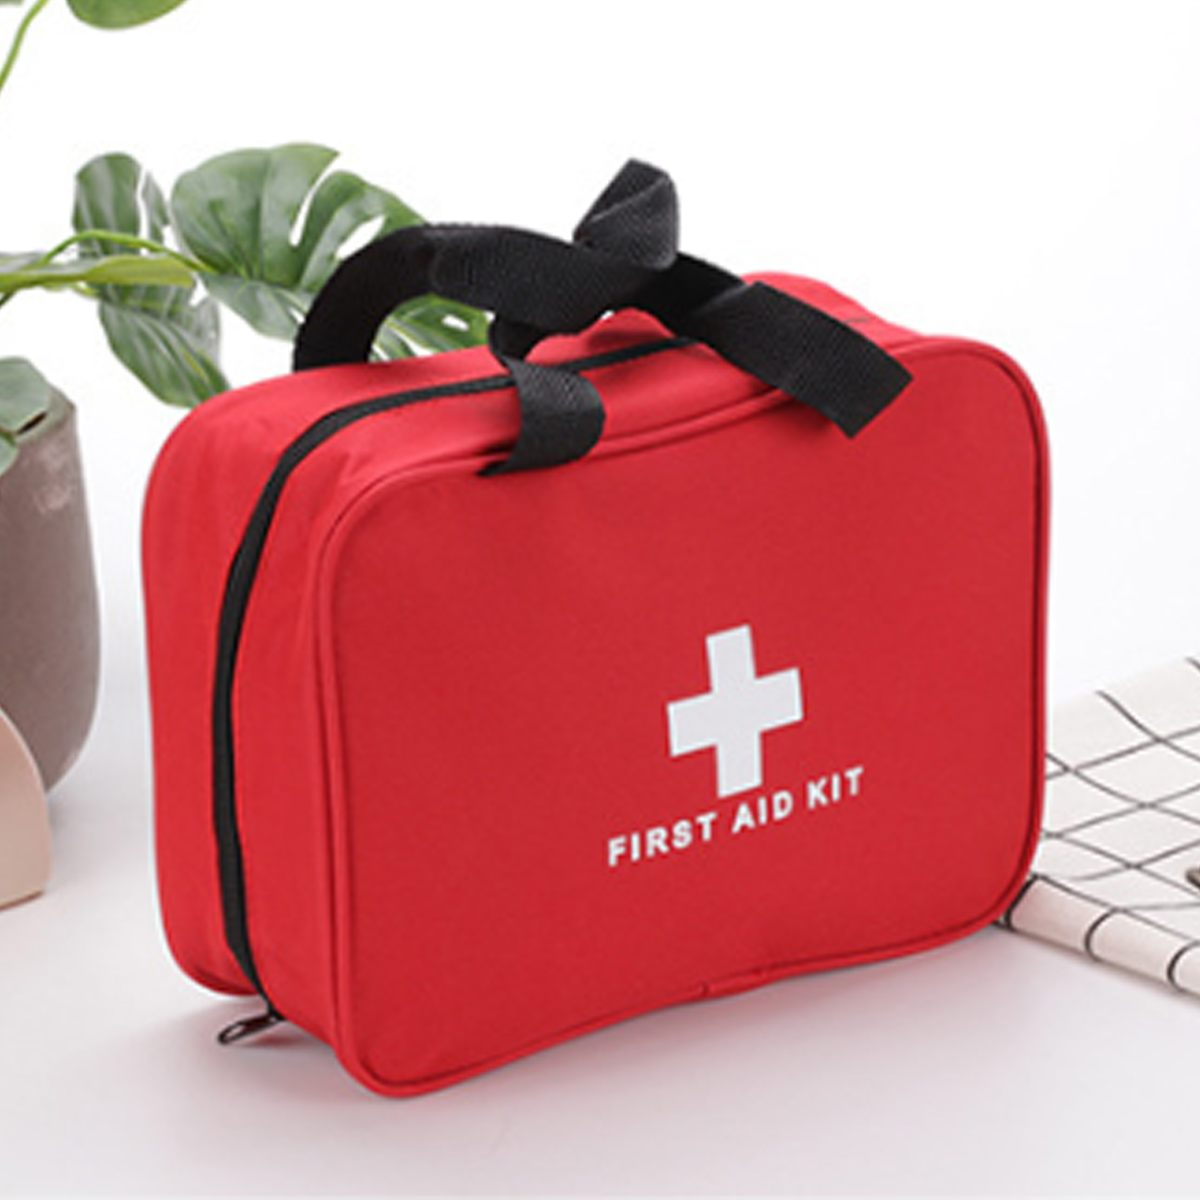 Outdoor Camping Emergency Medical Bag First Aid Kit Pouch Rescue Kit Empty Bag For Househld Travel Survival Kit 9.6*7.31*3.0inch